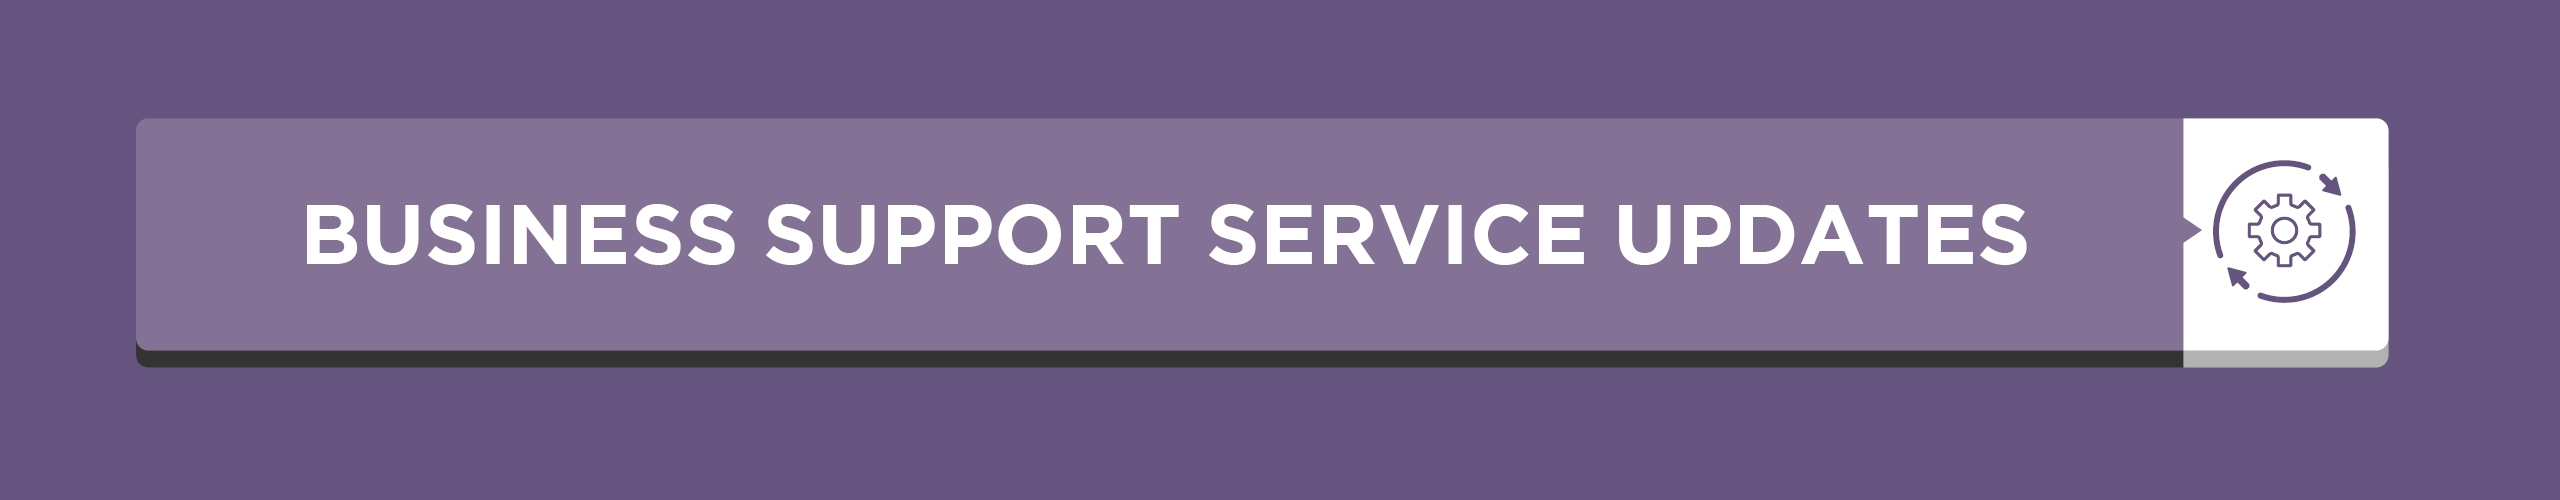 Business Support Covid Banner